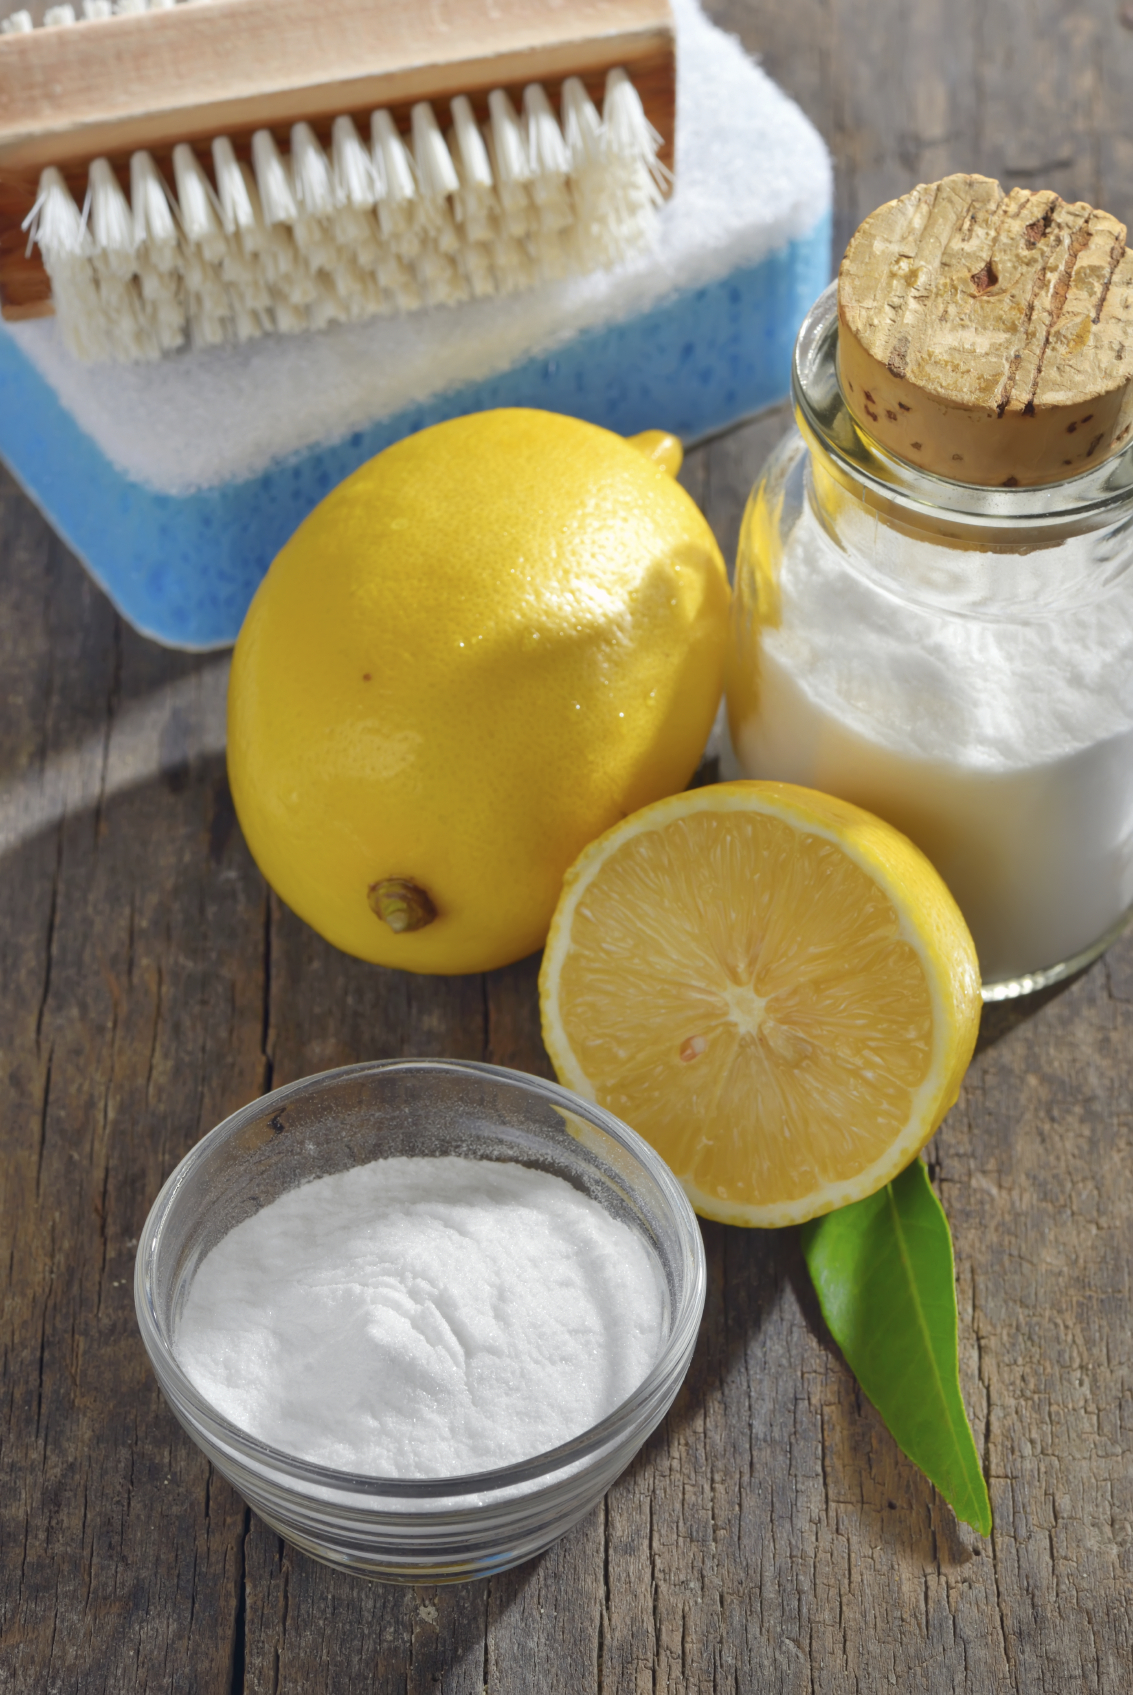 Household ingredients for making DIY cleaning products